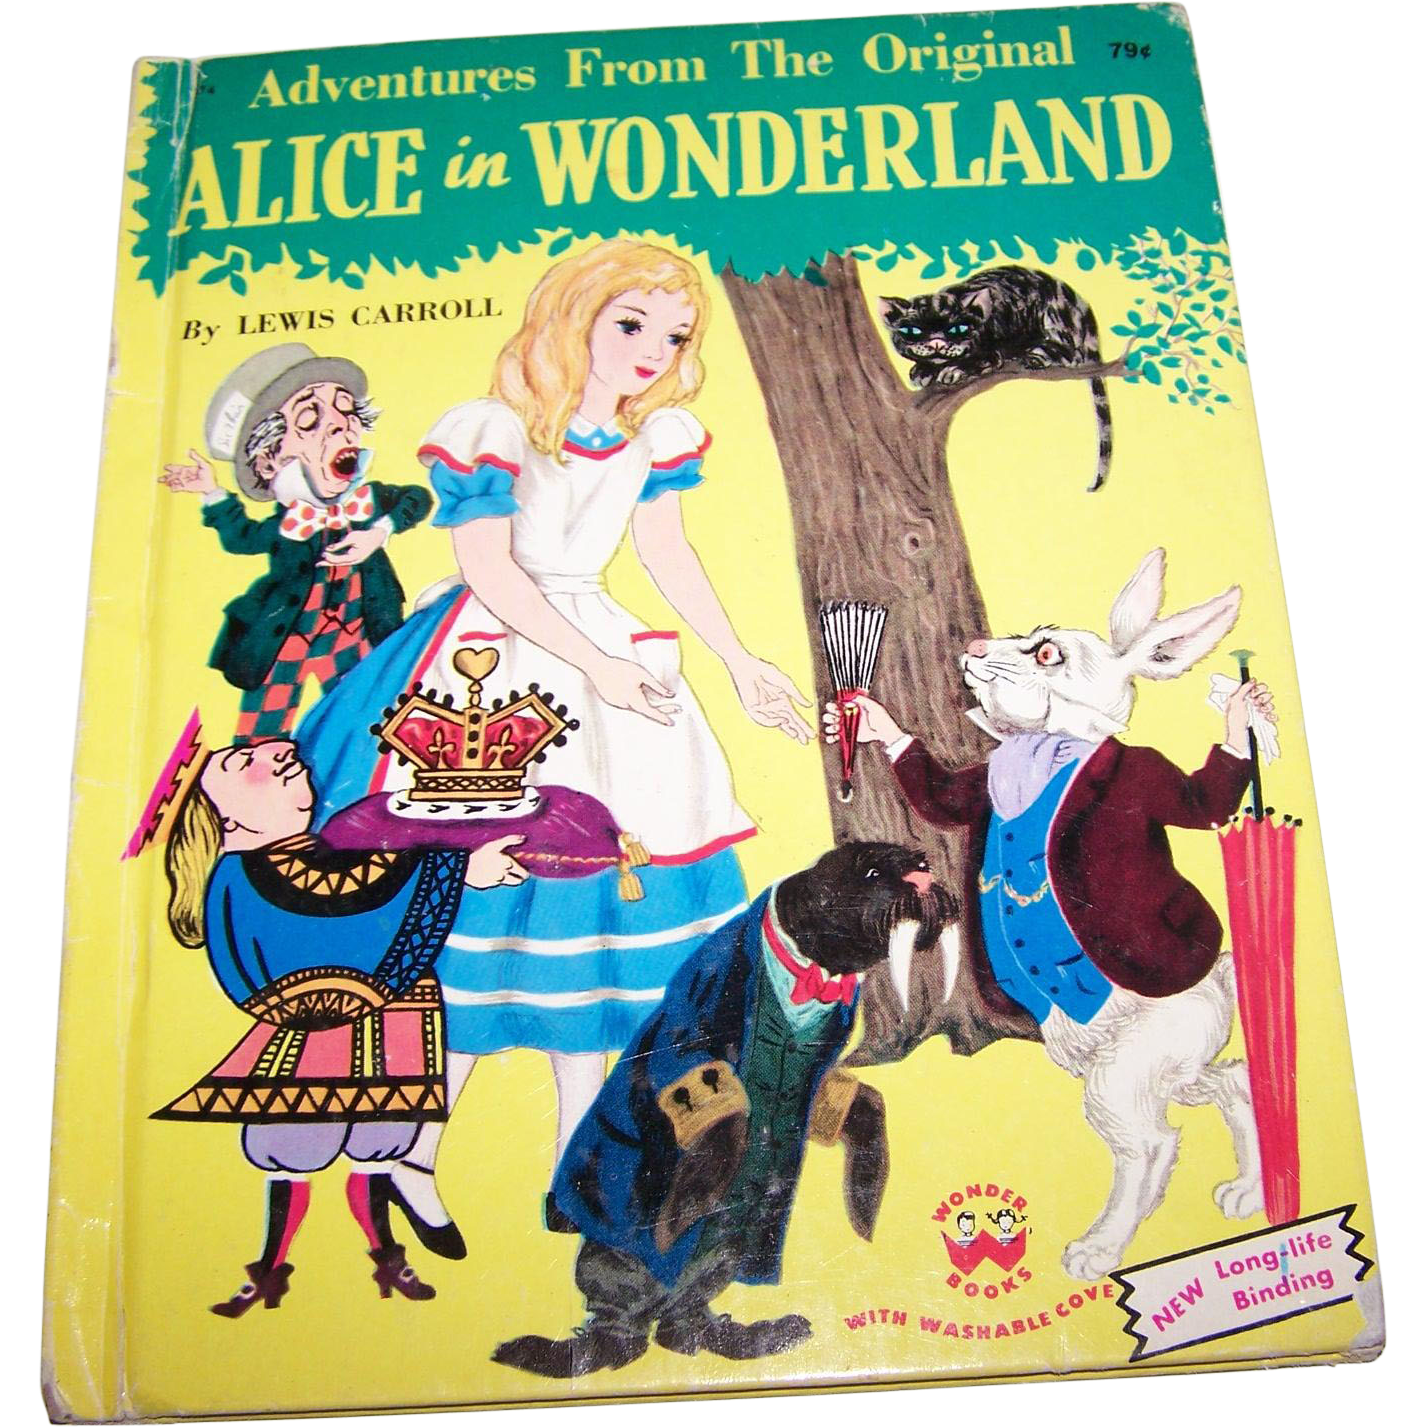 Adventures From The Original Alice in Wonderland Wonder Children's Book